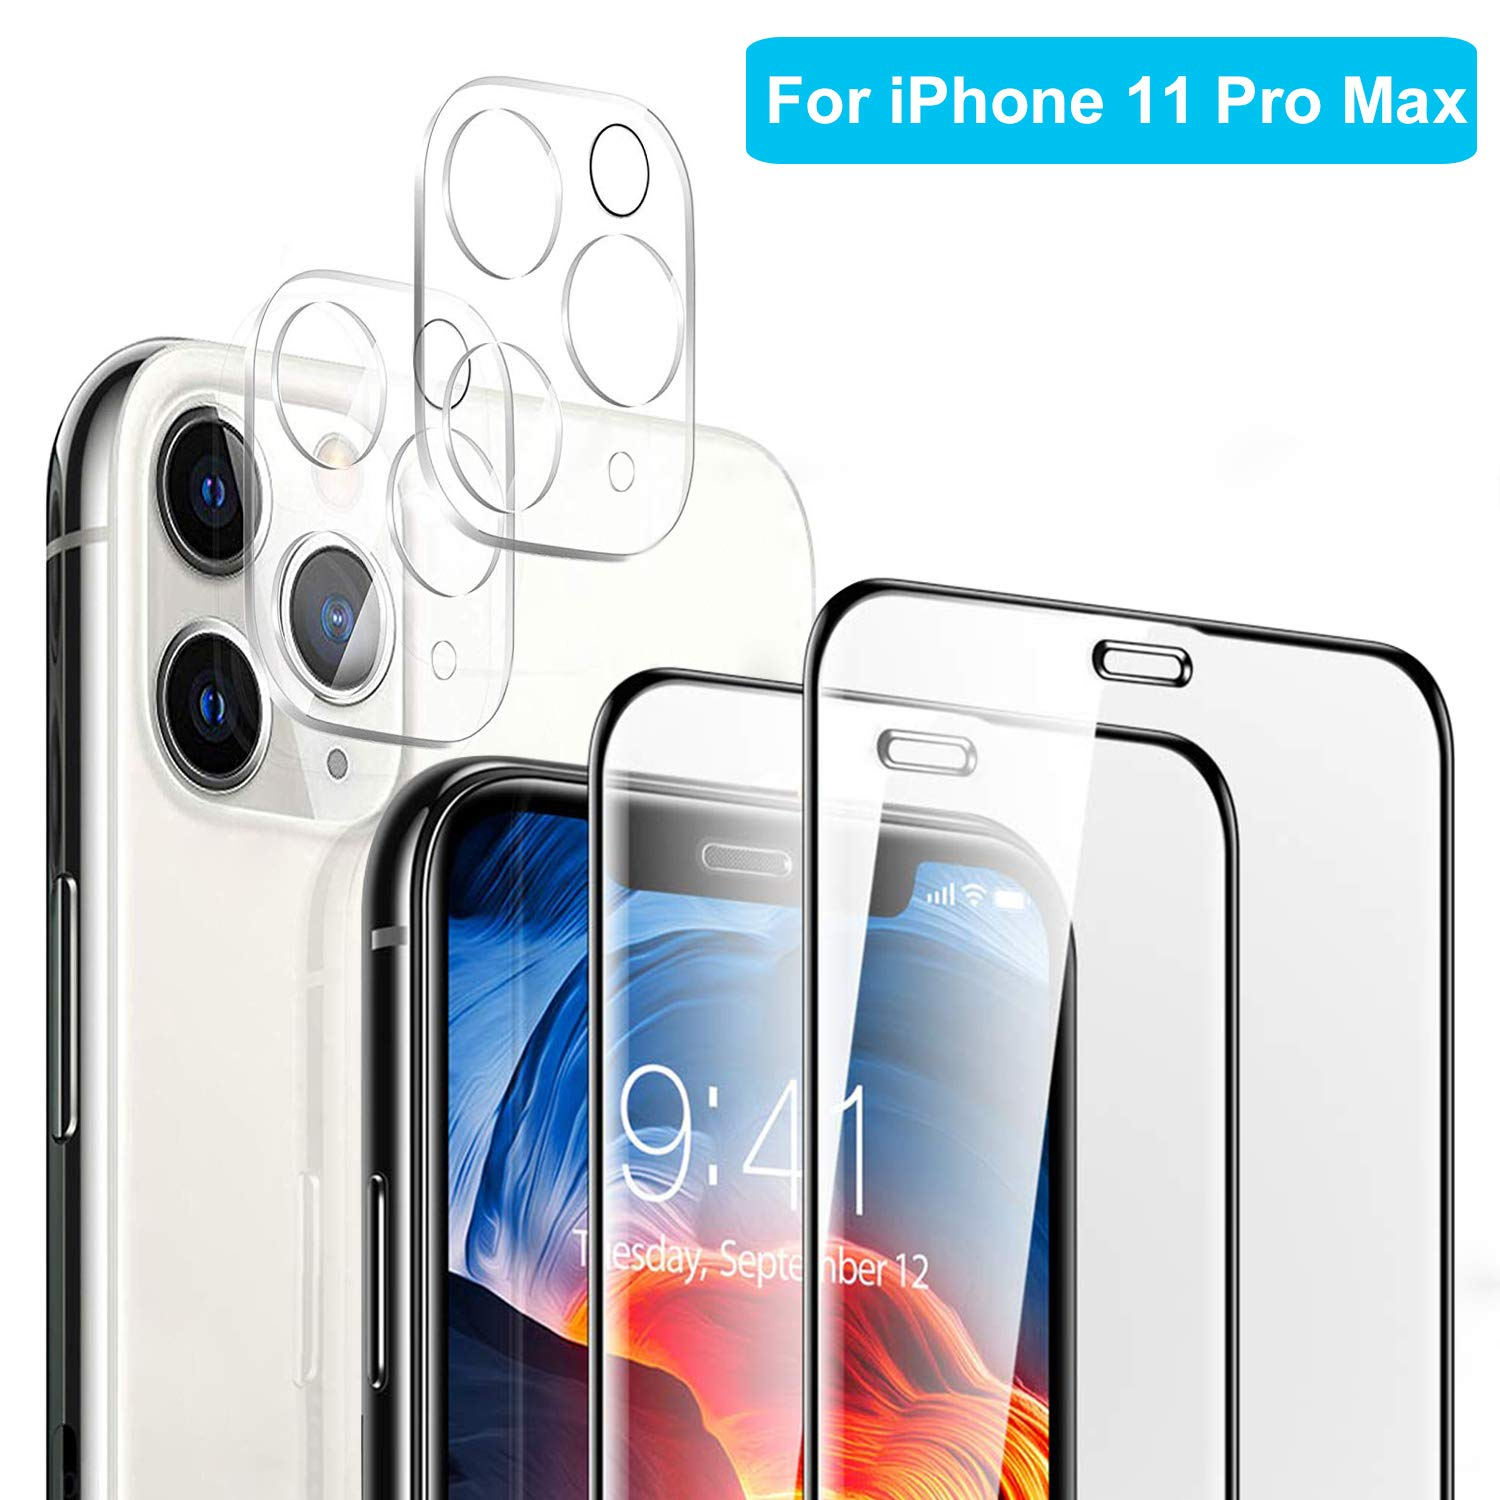 【4 Pack】 Tamoria 2 Pack iPhone 11 Pro Max Camera Lens Protector + 2 Pack Tempered Glass Full Coverage Screen Protector Edge to Edge Film Anti-Fingerprint Screen Cover for iPhone 11 Pro Max 6.5''